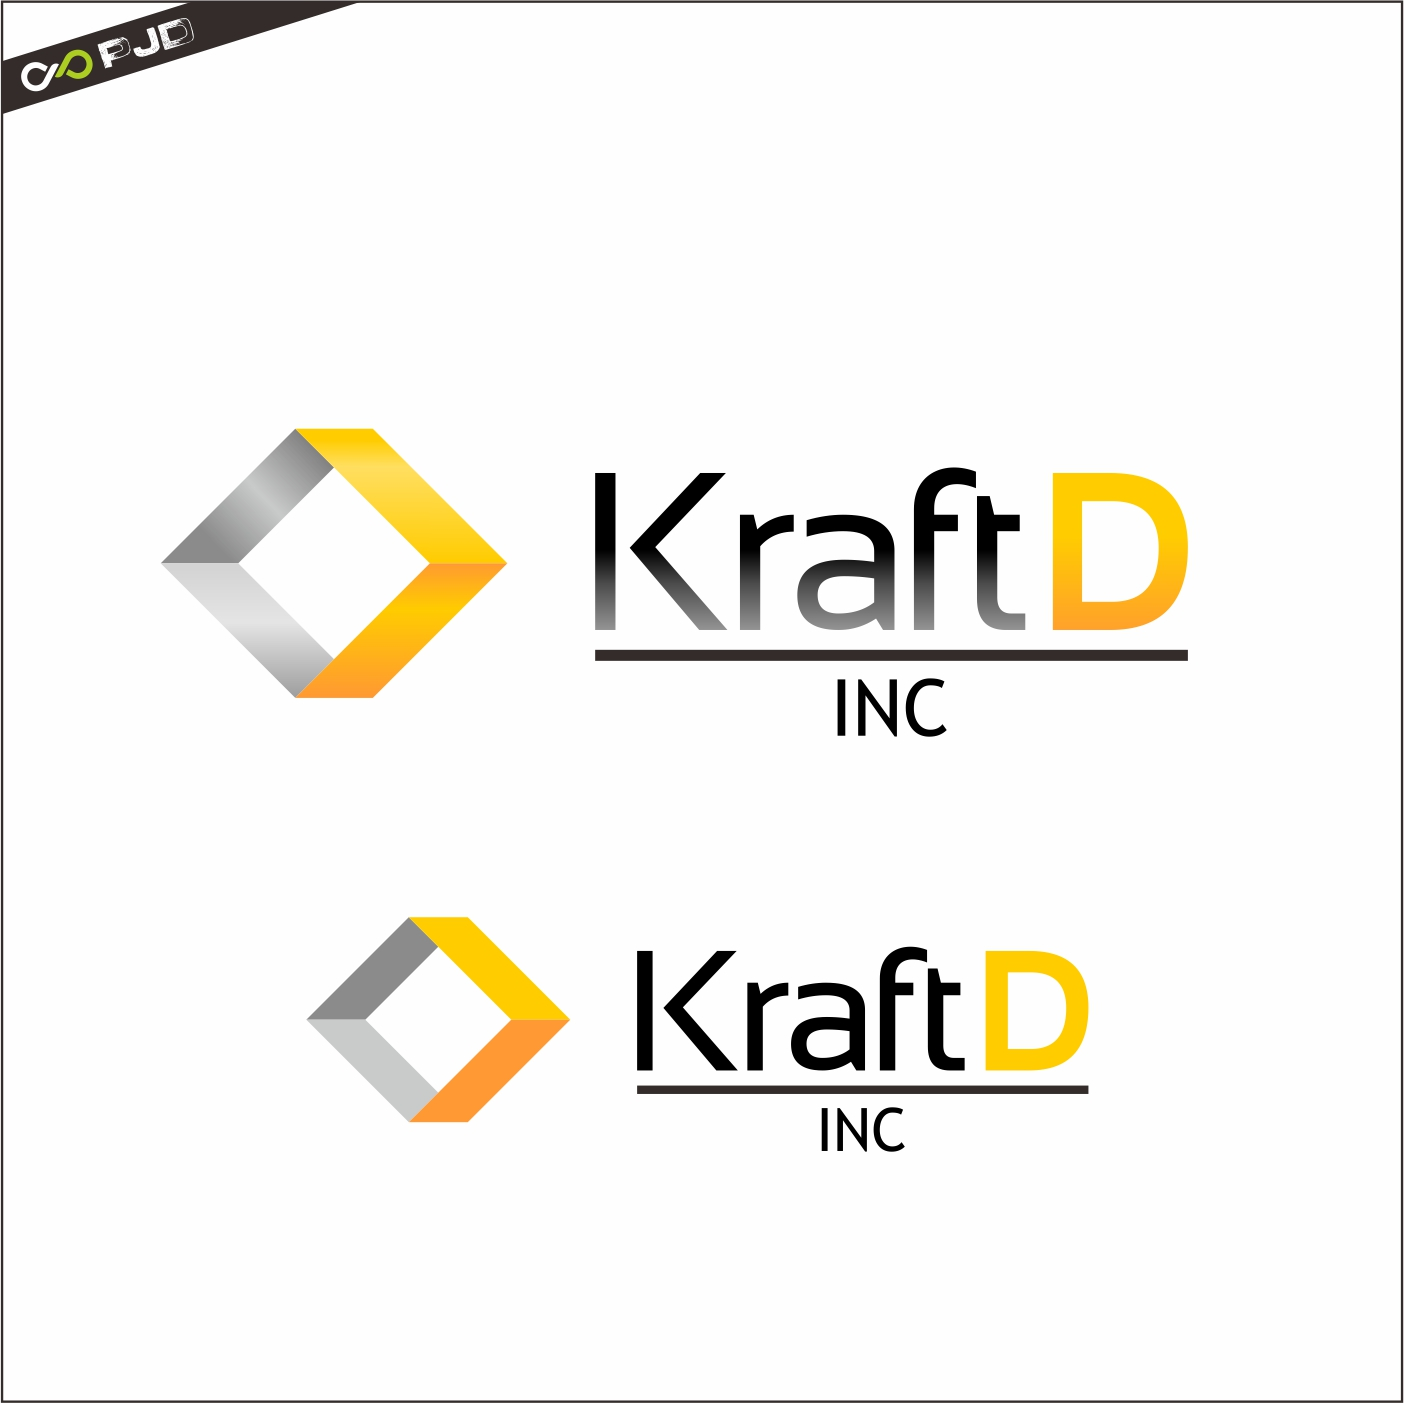 Logo Design by PJD - Entry No. 473 in the Logo Design Contest Unique Logo Design Wanted for Kraft D Inc.